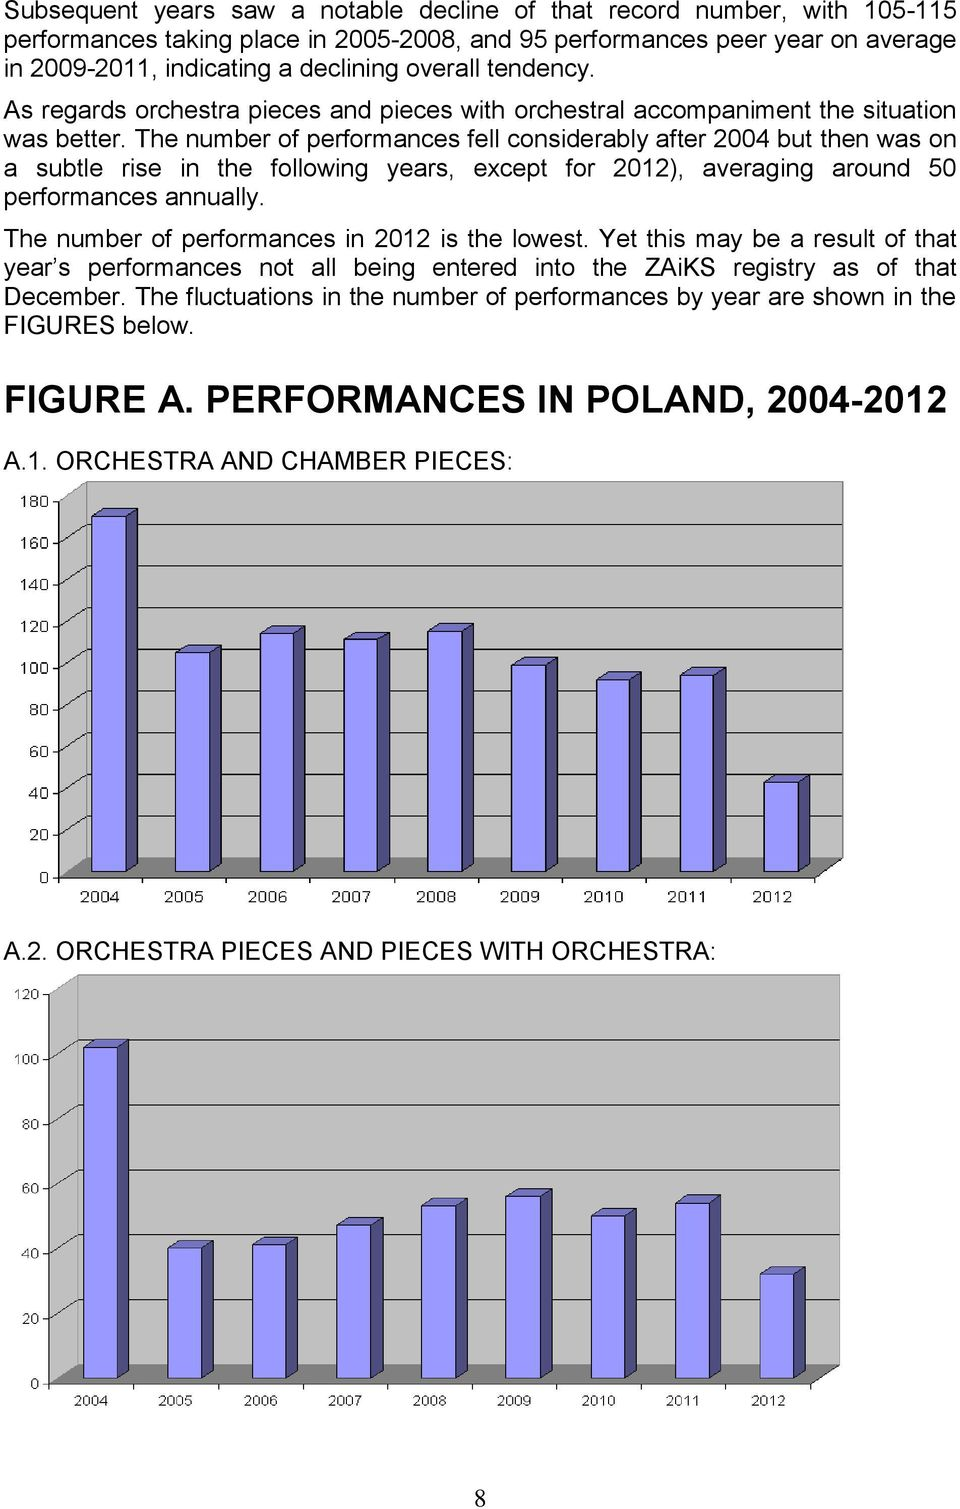 The number of performances fell considerably after 2004 but then was on a subtle rise in the following years, except for 2012), averaging around 50 performances annually.